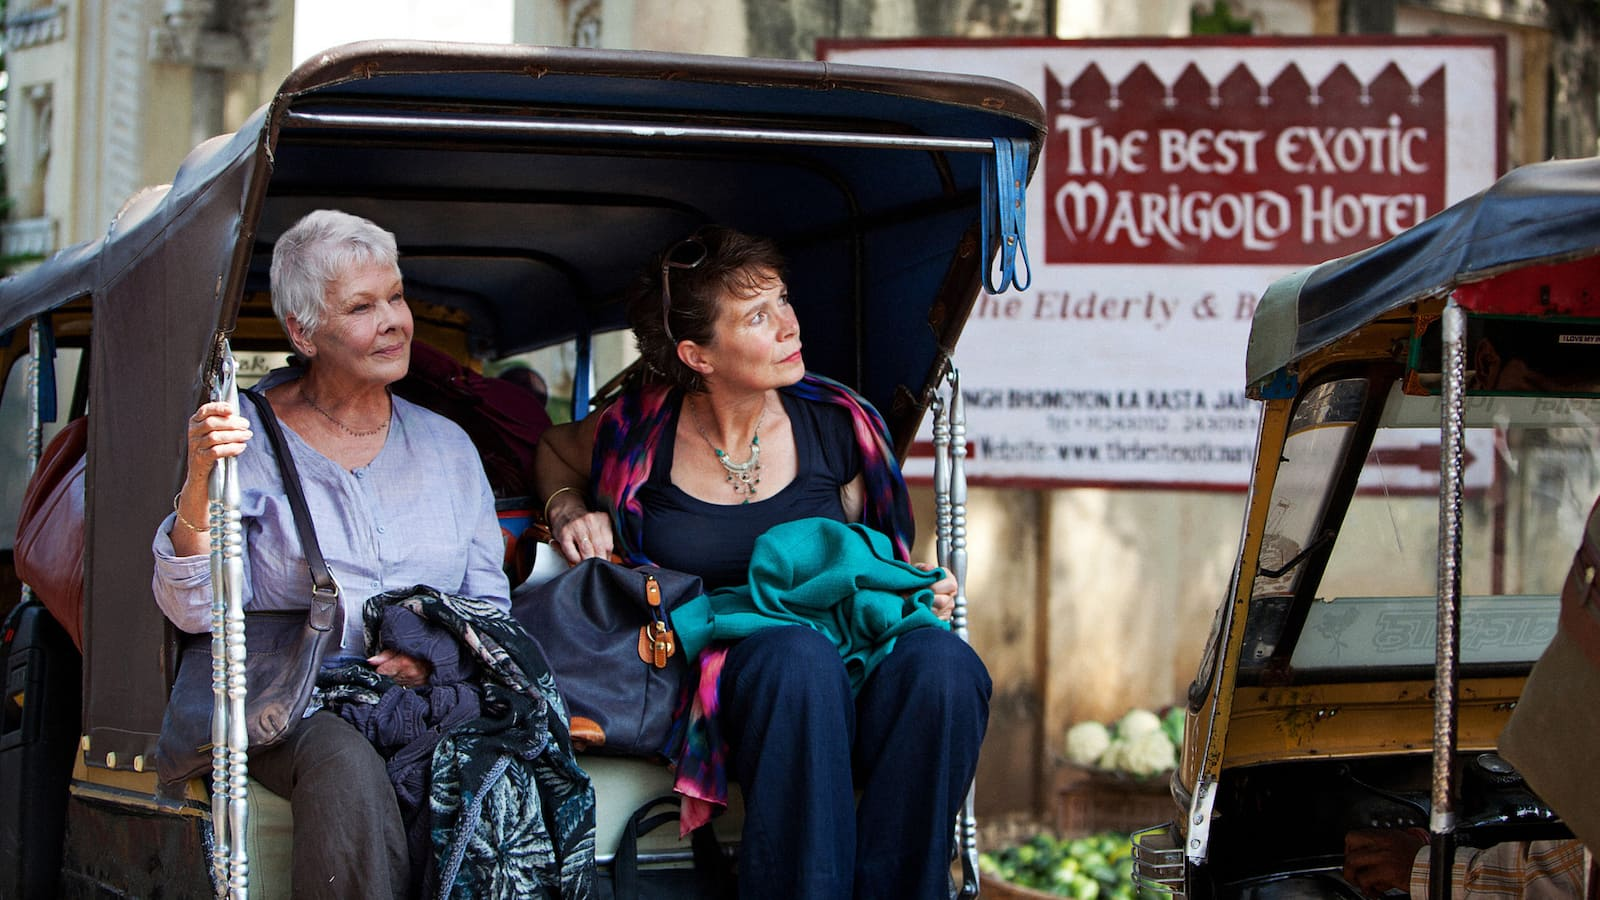 the-best-exotic-marigold-hotel-2011